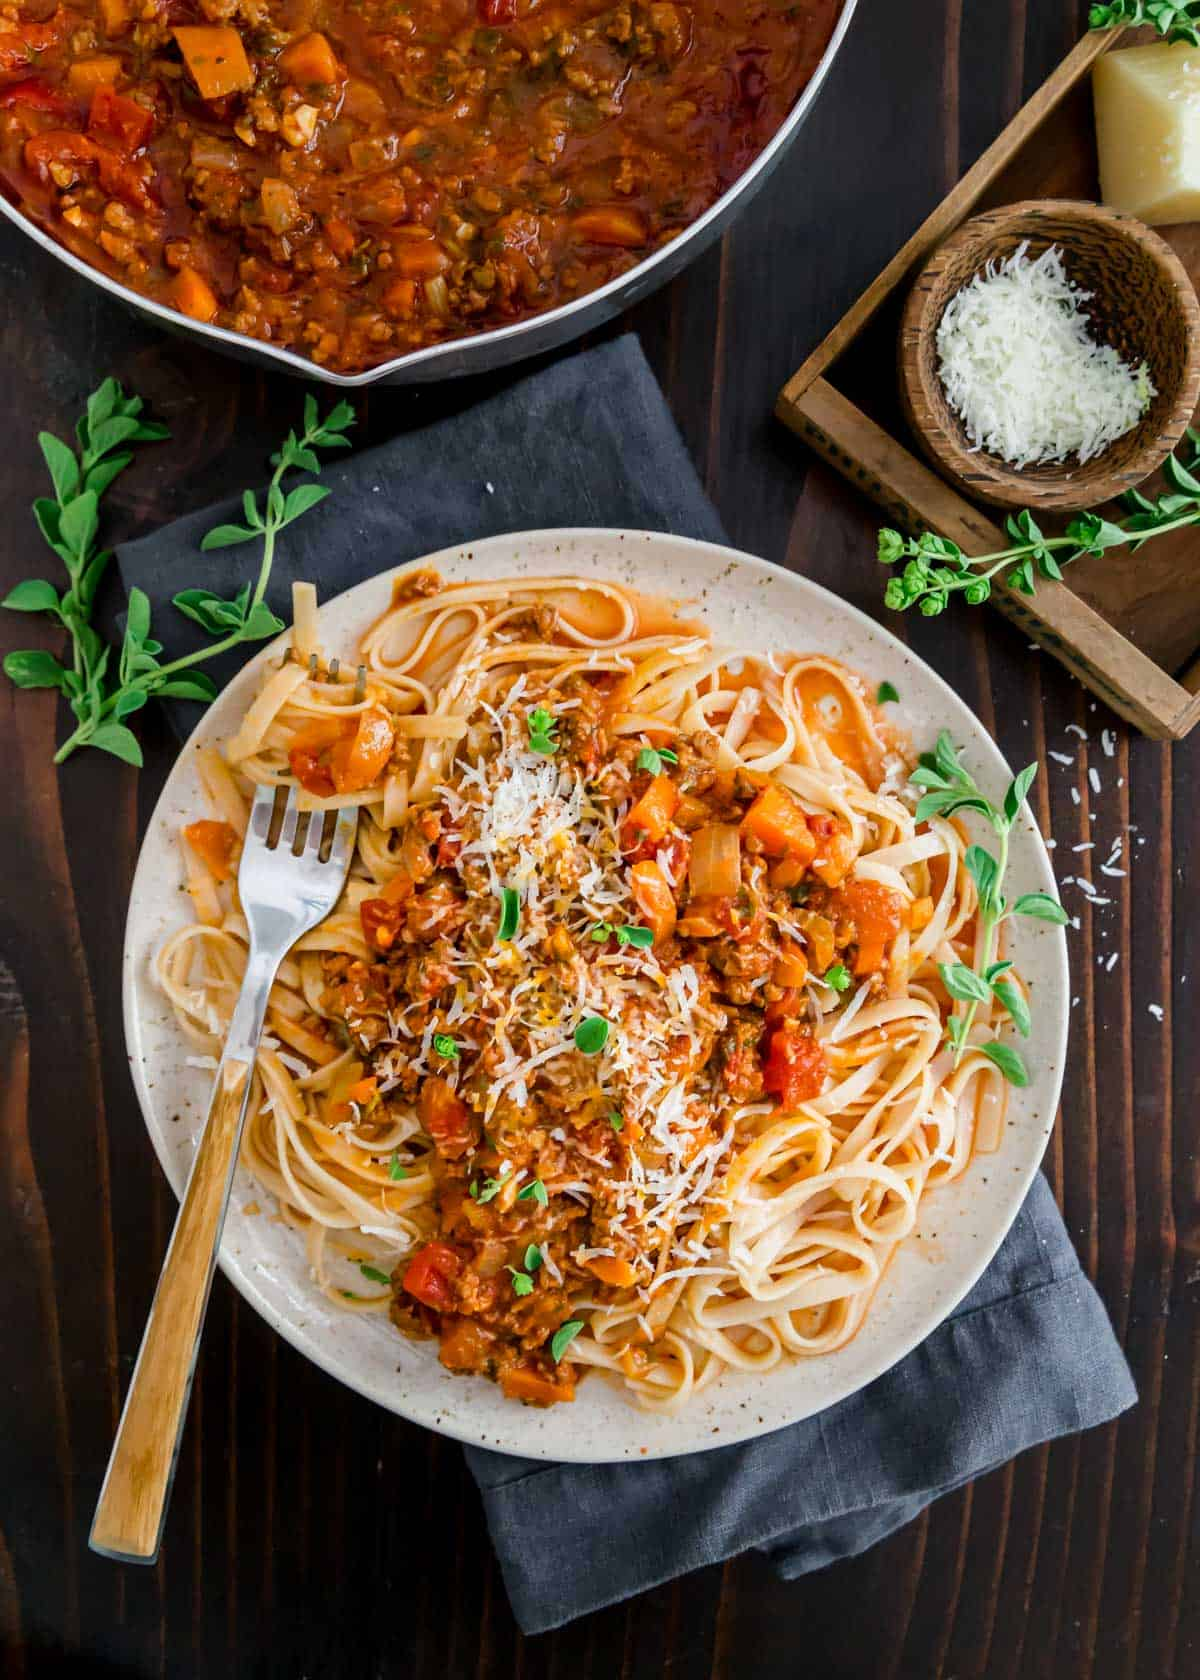 Enjoy all the hearty, comforting flavors of bolognese sauce (Italian meat sauce) in this Instant Pot version.